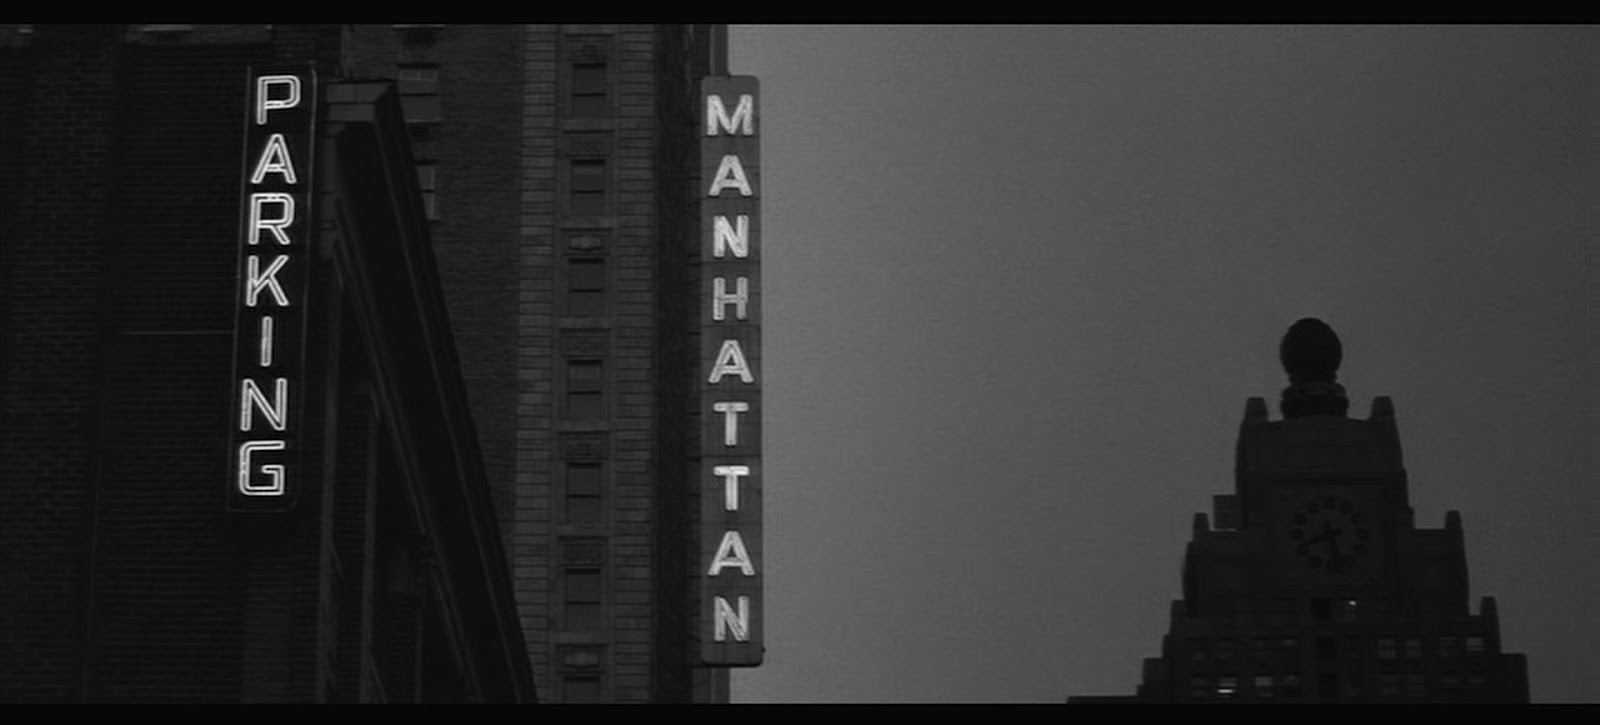 manhattan-woody-allen-neon-lights